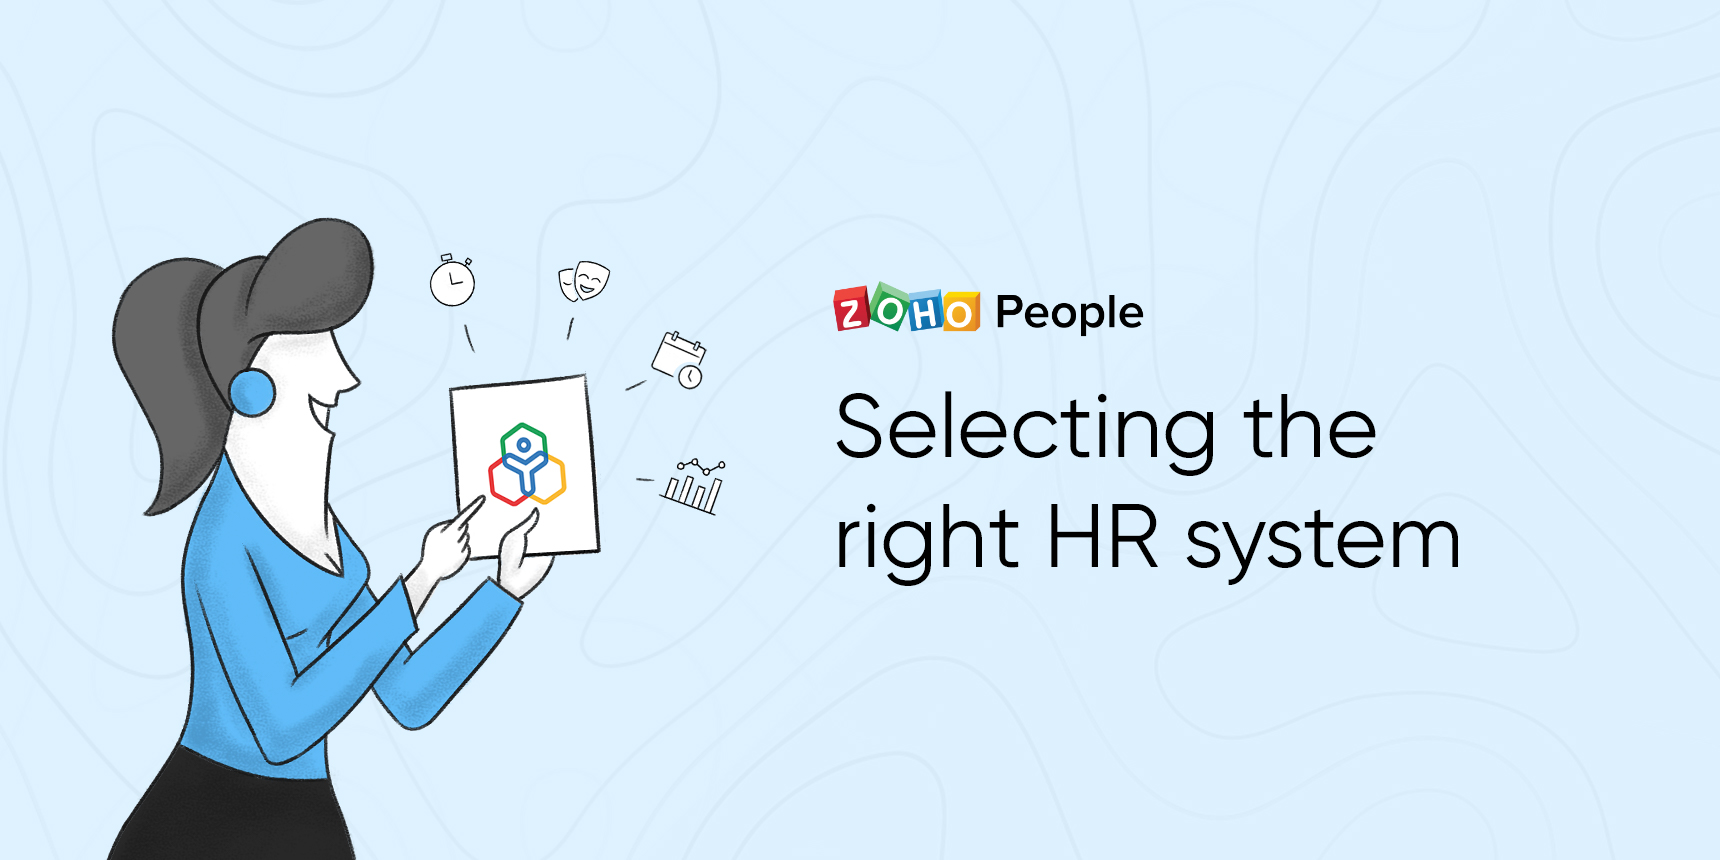 7 steps to choose the right HR system for your organization